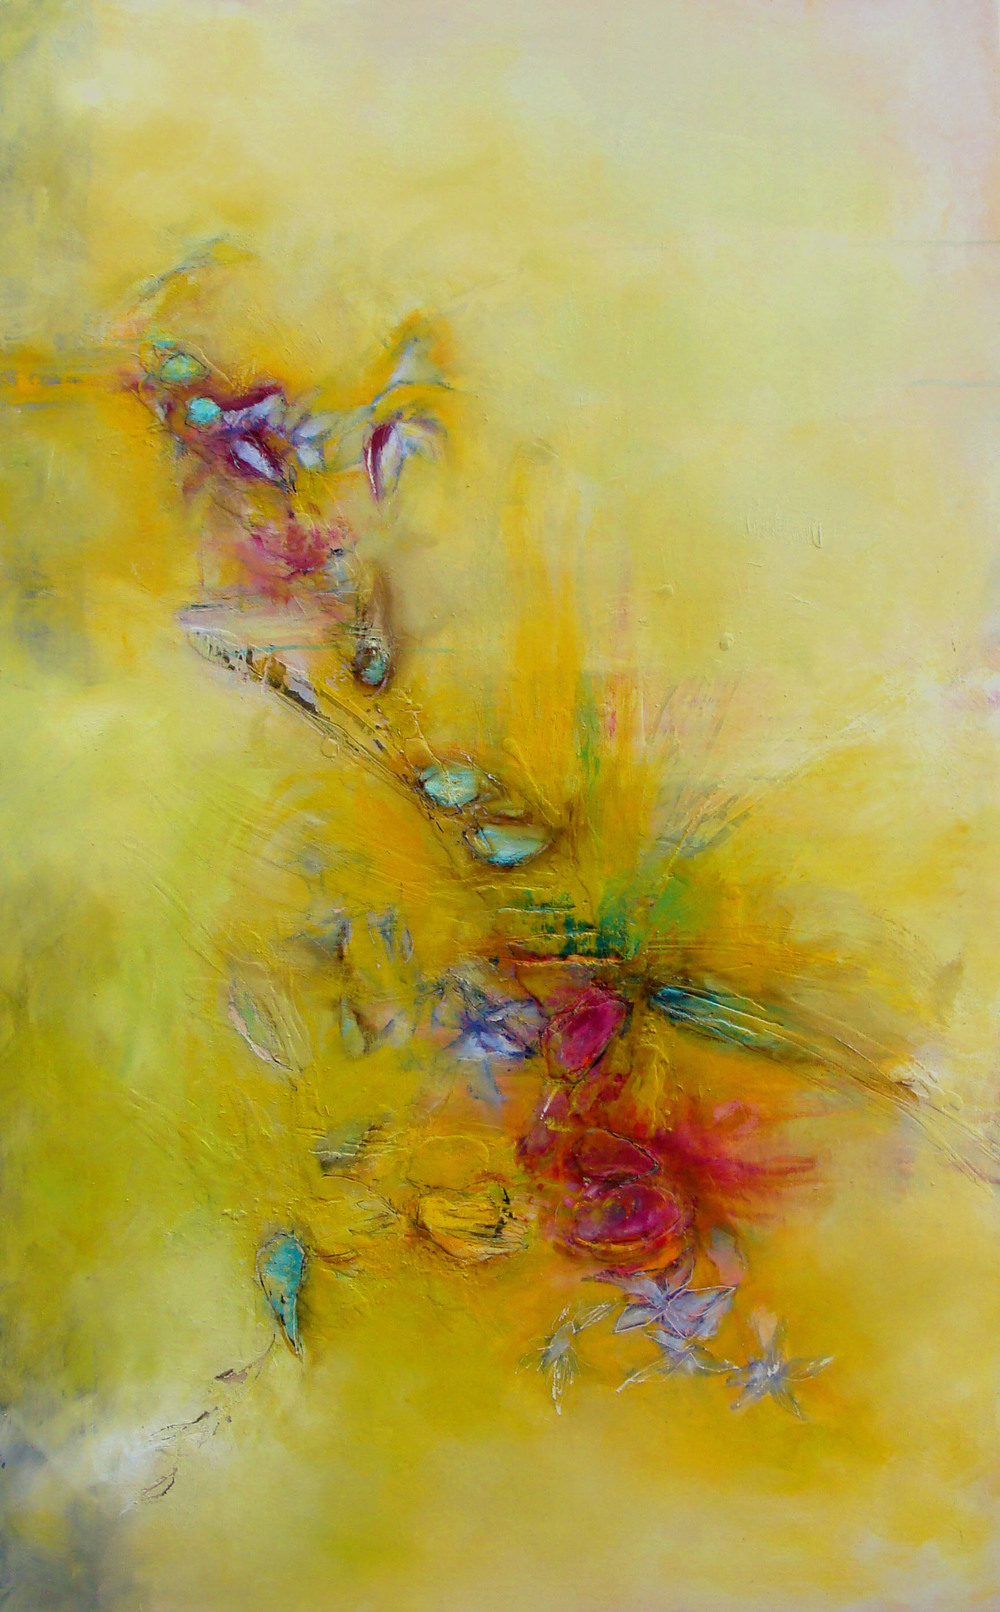 "dissolved into petals, oil, wax, pastel on wood, 48x30"", 2013, SOLD"